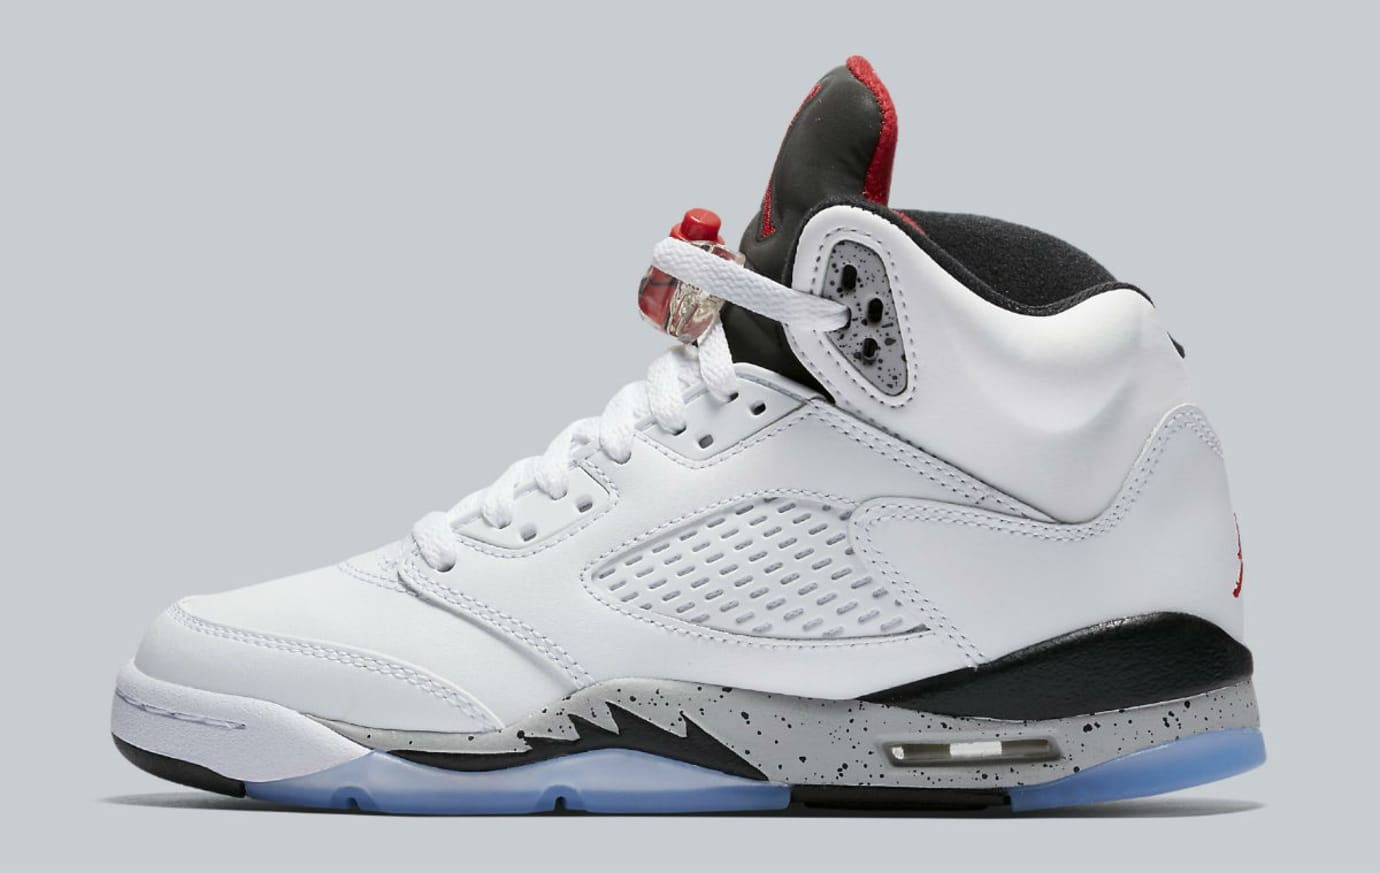 Air Jordan 5 White Cement Release Date Gradeschool 440888-104